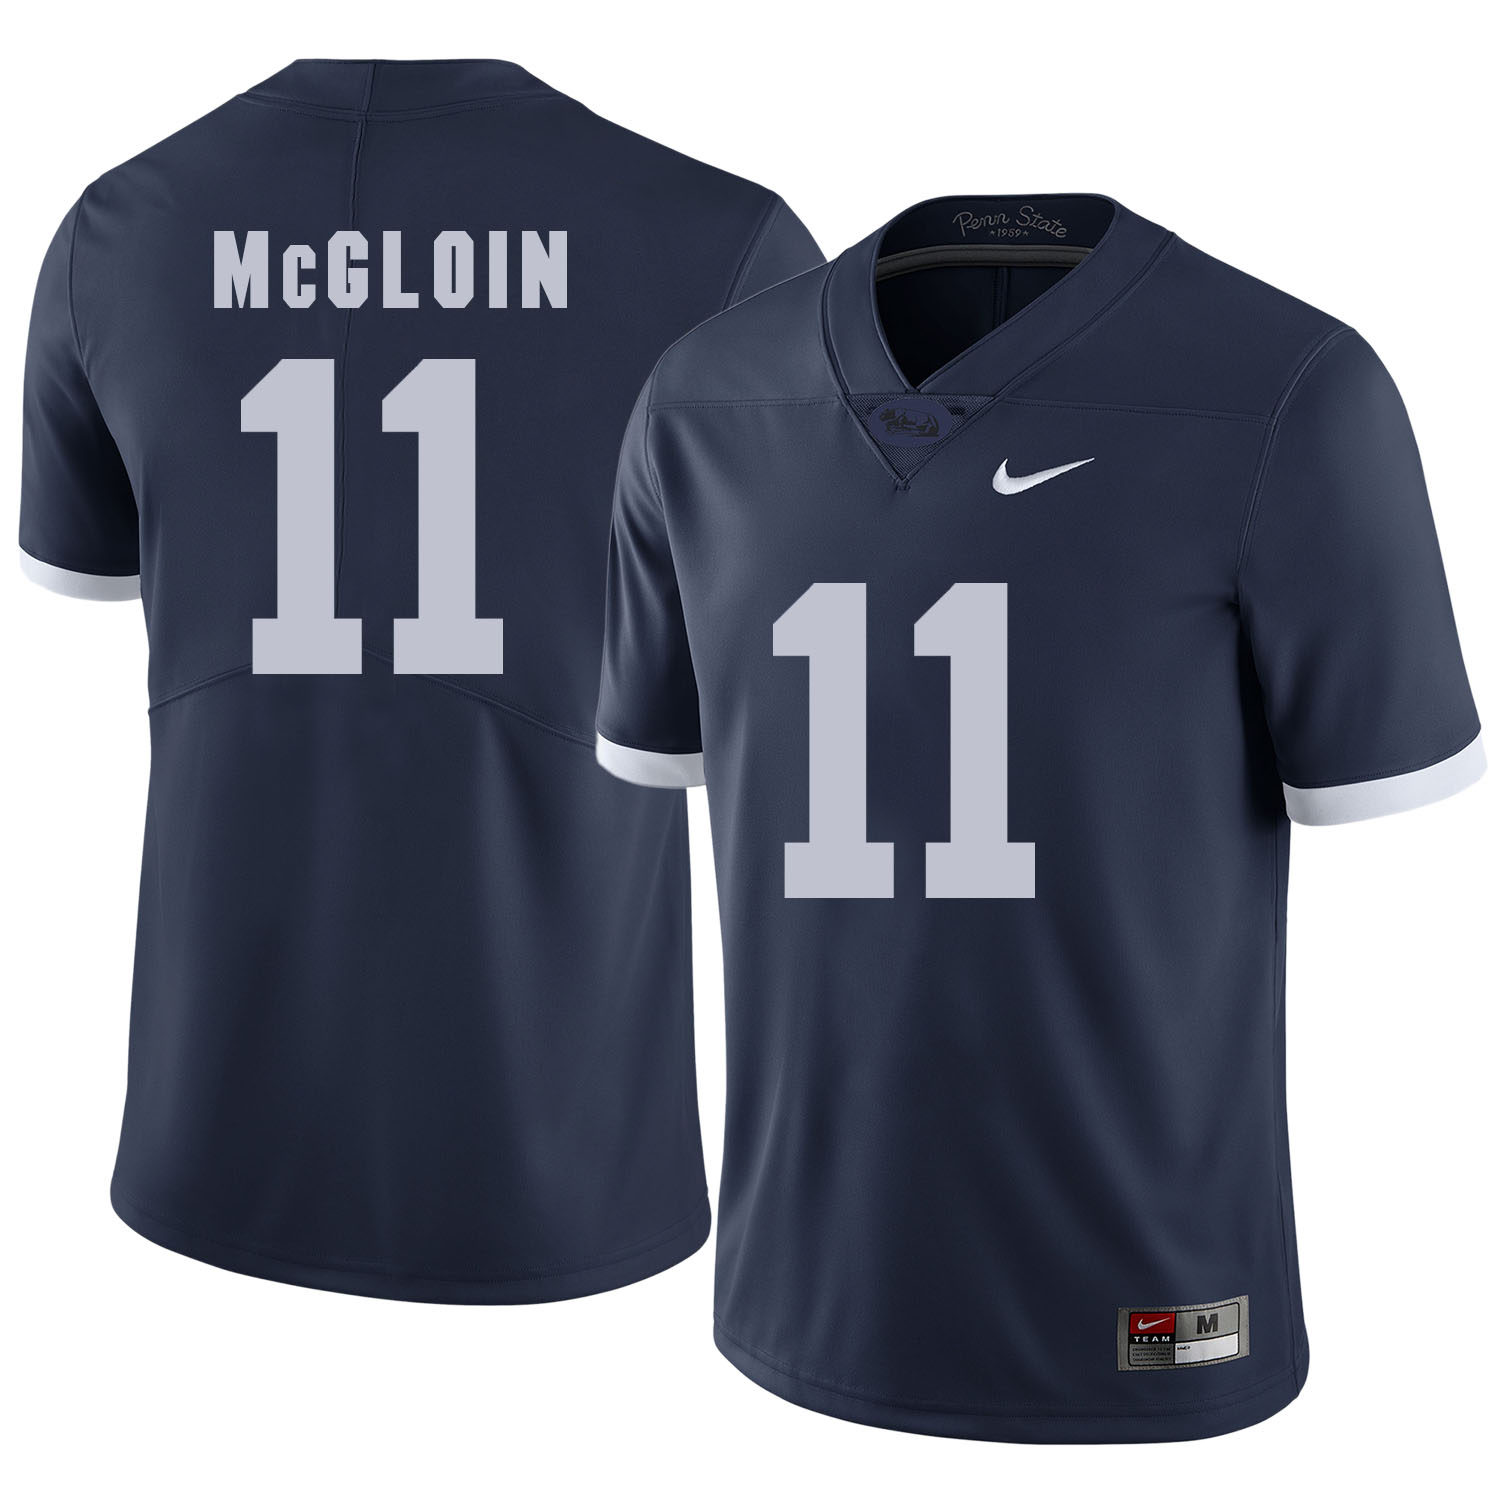 Penn State Nittany Lions 11 Matthew McGloin Navy College Football Jersey